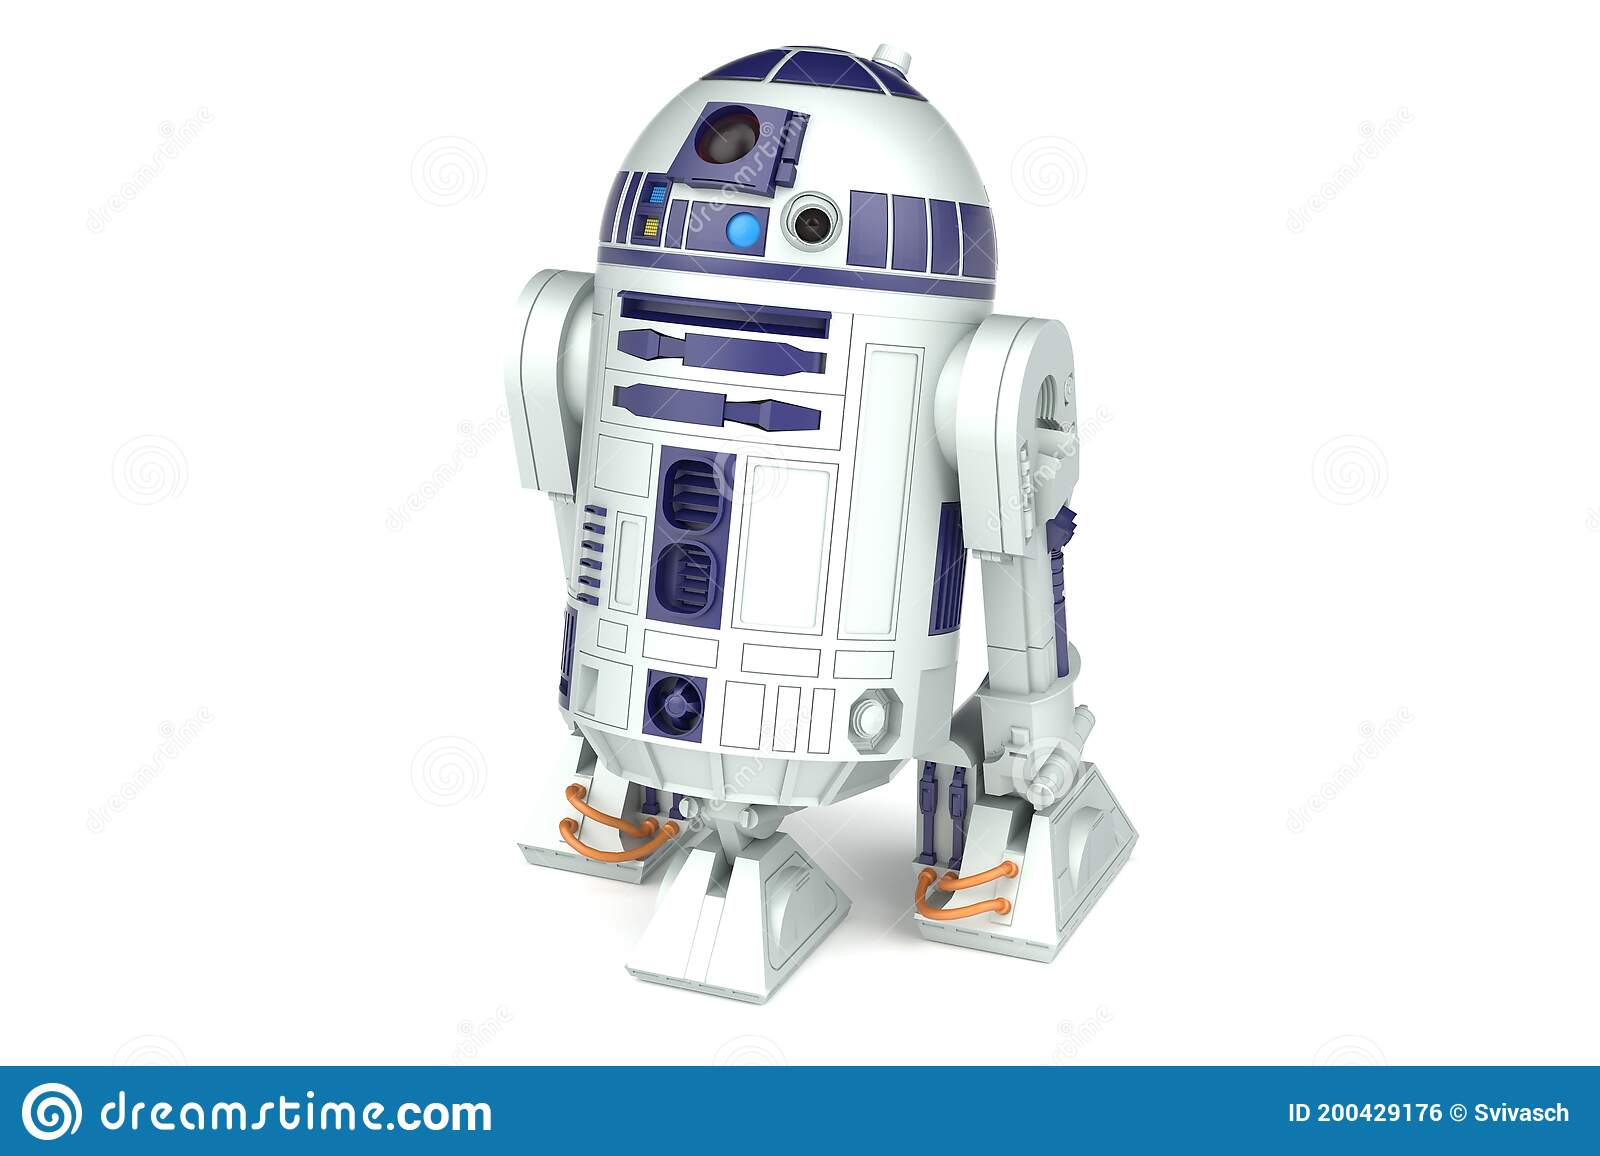 214 Star Wars R2d2 Photos Free Royalty Free Stock Photos From Dreamstime